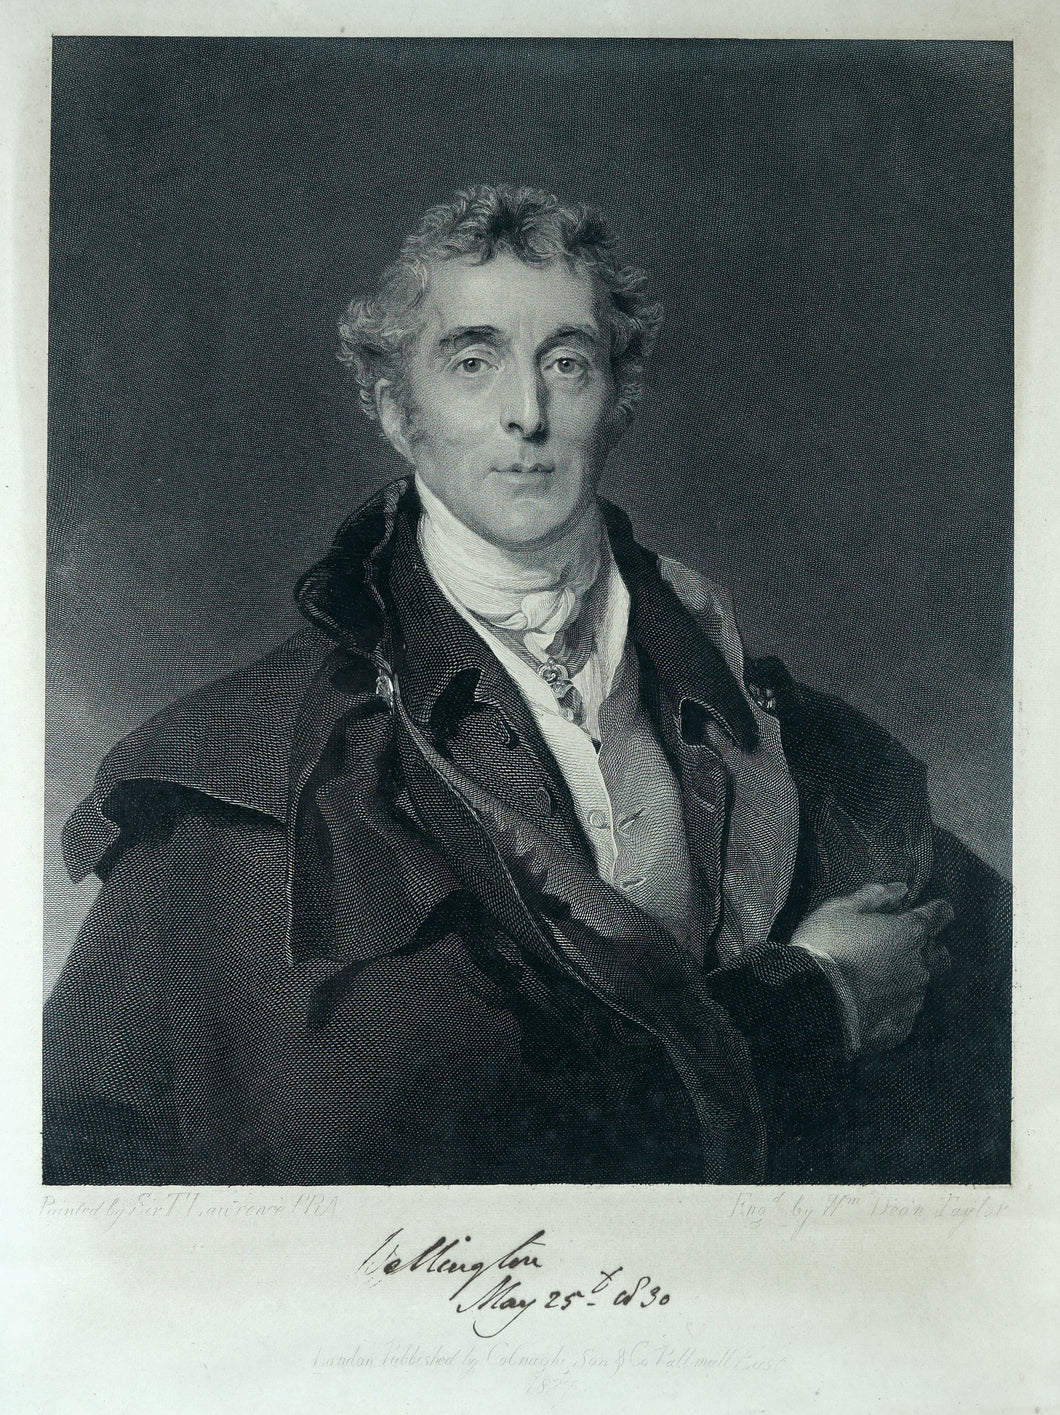 Autograph Signed Engraving of Arthur Wellesley, Duke of Wellington K.G., 1830